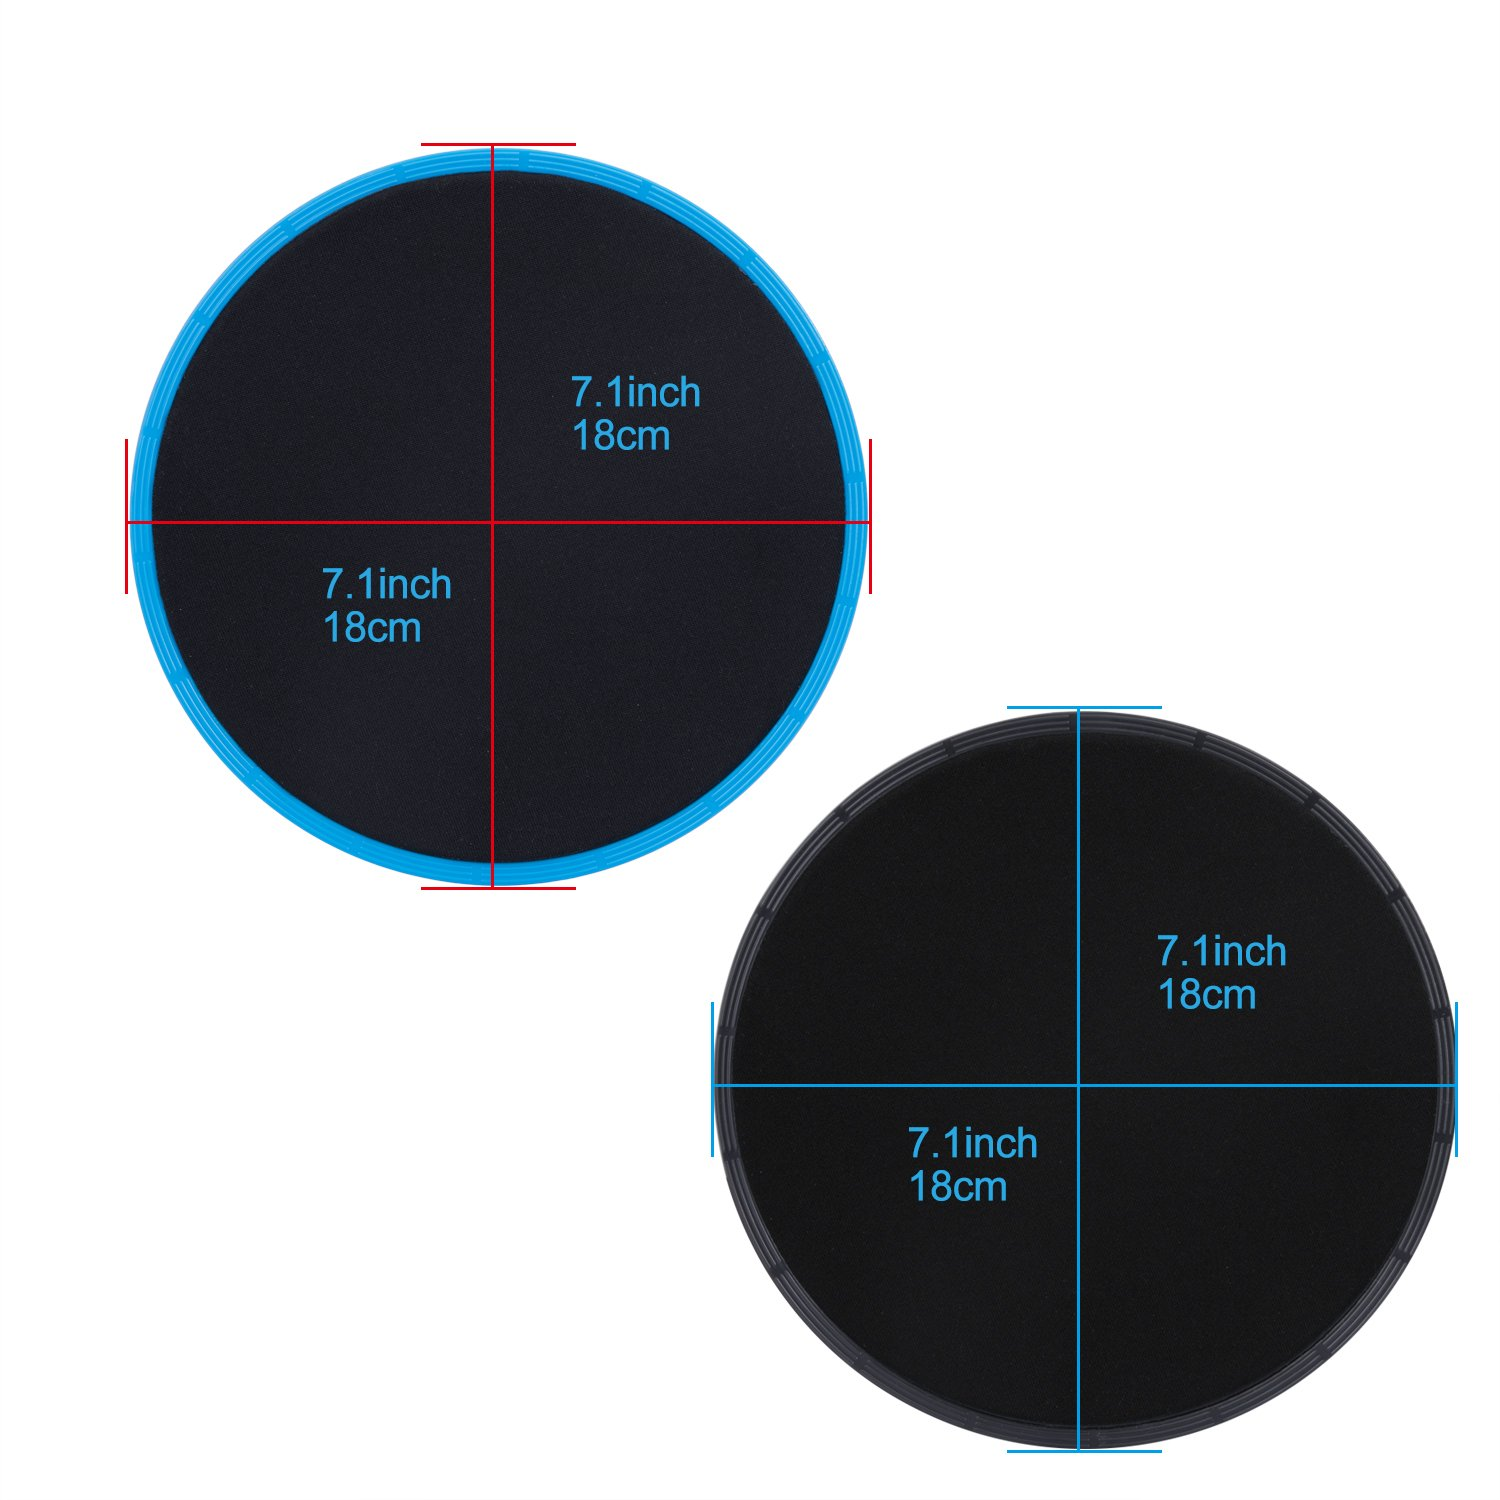 Gliding Discs Core Sliders Exercise Sliders 4 Pack Dual Sided Gliding Slider for Carpet or Hard Floors Core Fitness Ultimate Core Training Gym and Full Body Workout/'s at Home or Travel Black /& Blue AMbs